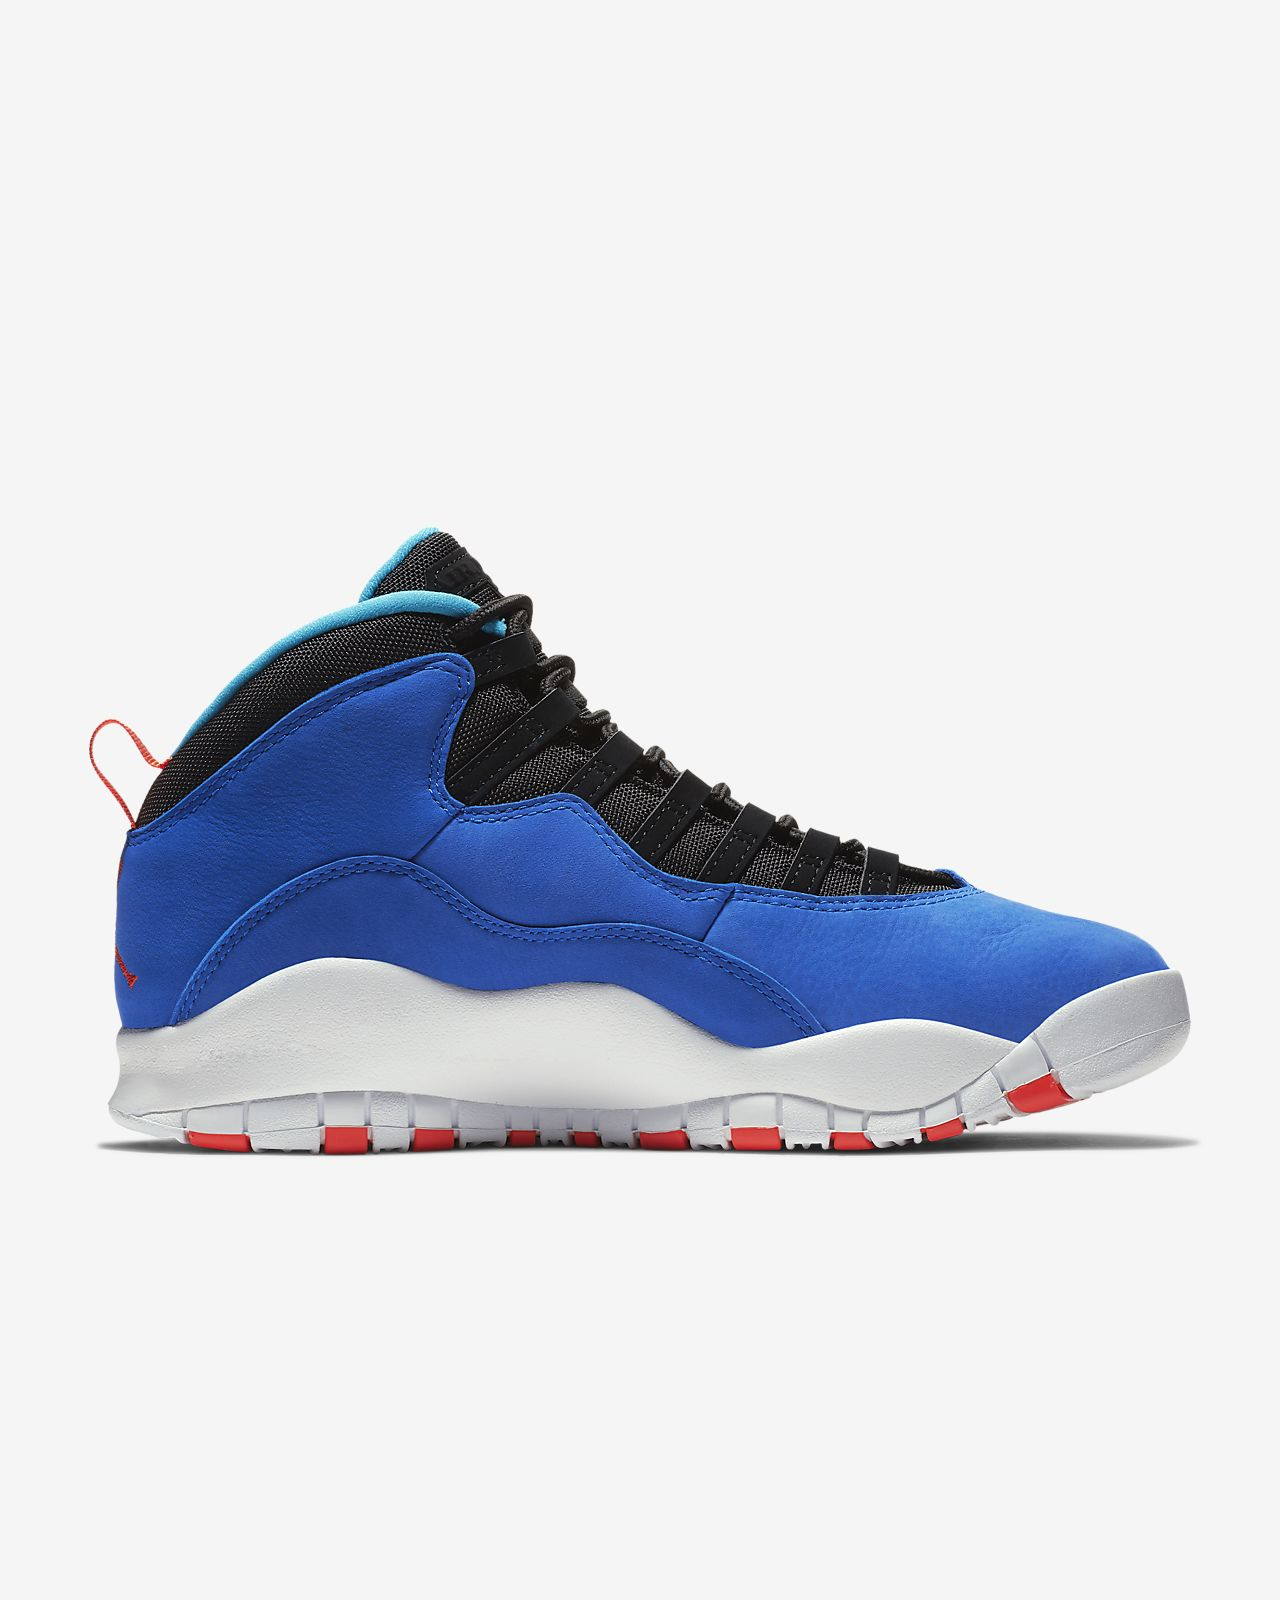 cfc2a61ab7e3df Air Jordan 10 Retro Men s Shoe. Nike.com CA